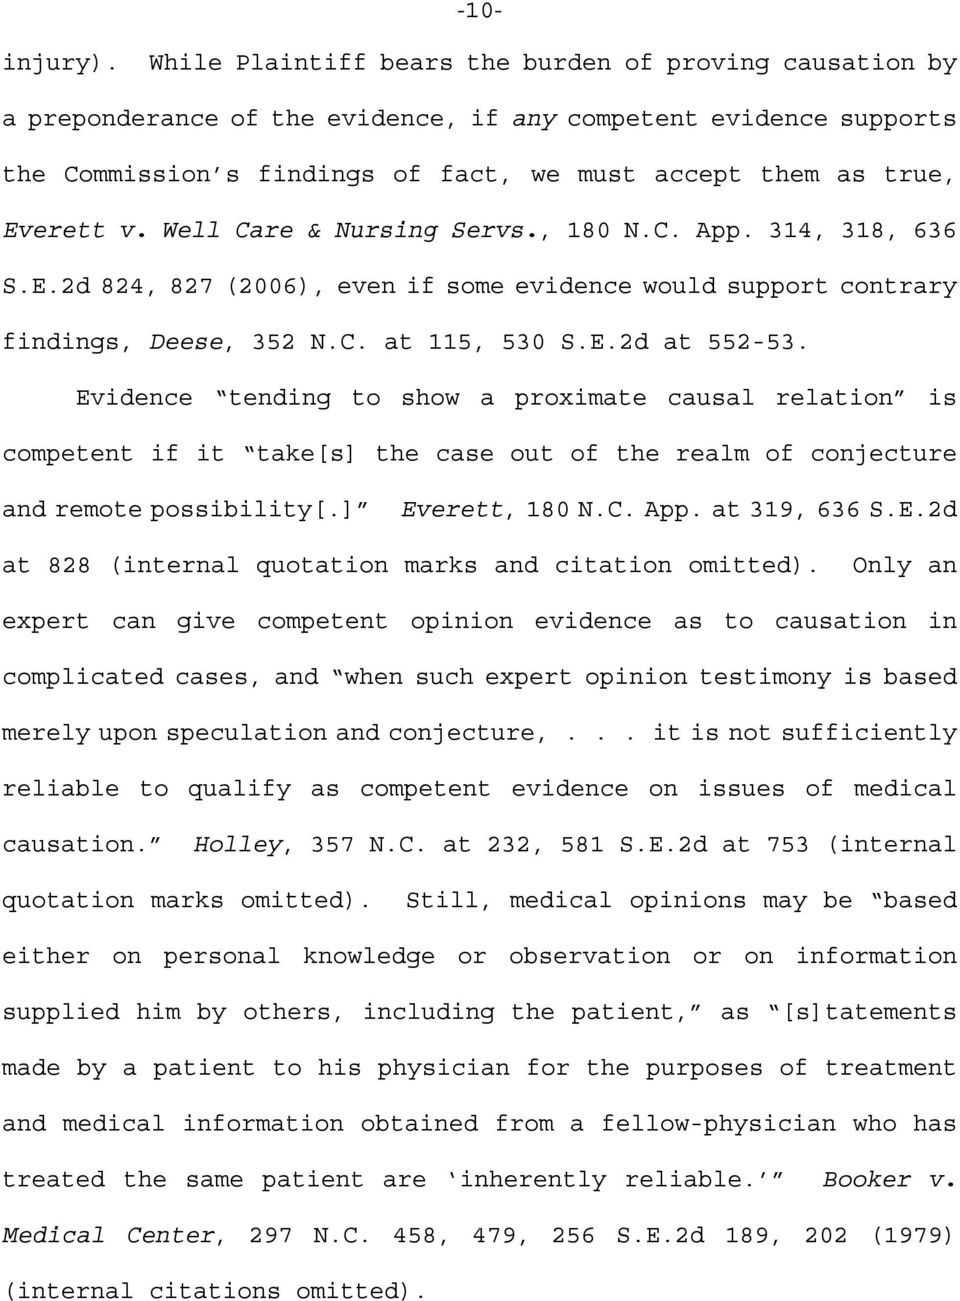 Well Care & Nursing Servs., 180 N.C. App. 314, 318, 636 S.E.2d 824, 827 (2006), even if some evidence would support contrary findings, Deese, 352 N.C. at 115, 530 S.E.2d at 552-53.